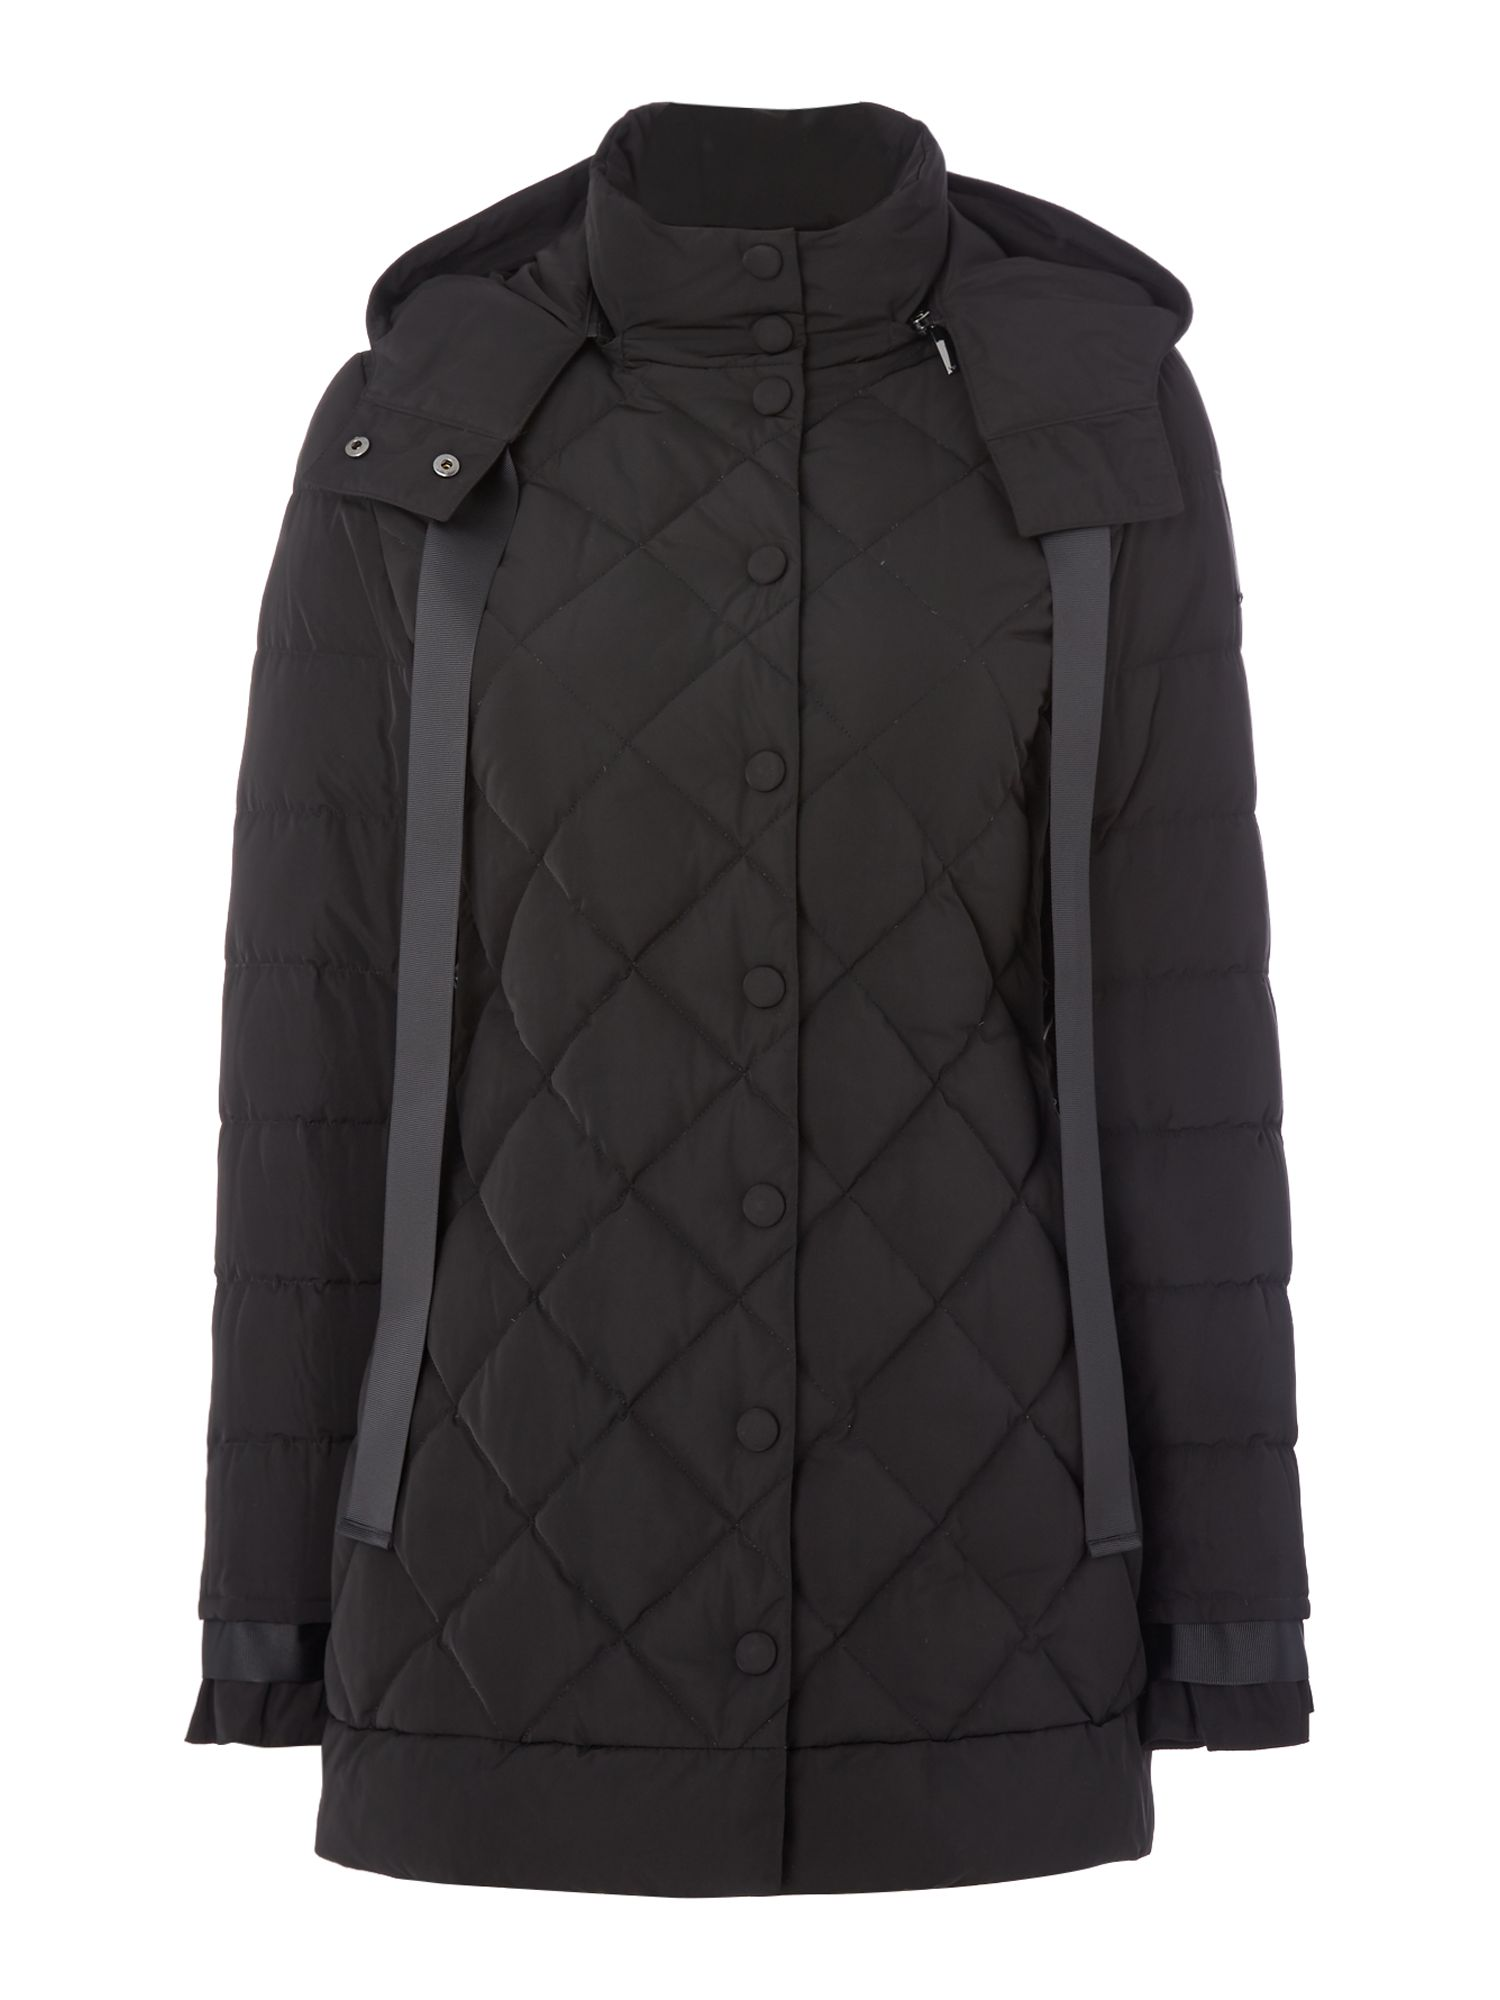 Armani Jeans Long sleeved padded quilted jacket in nero, Black